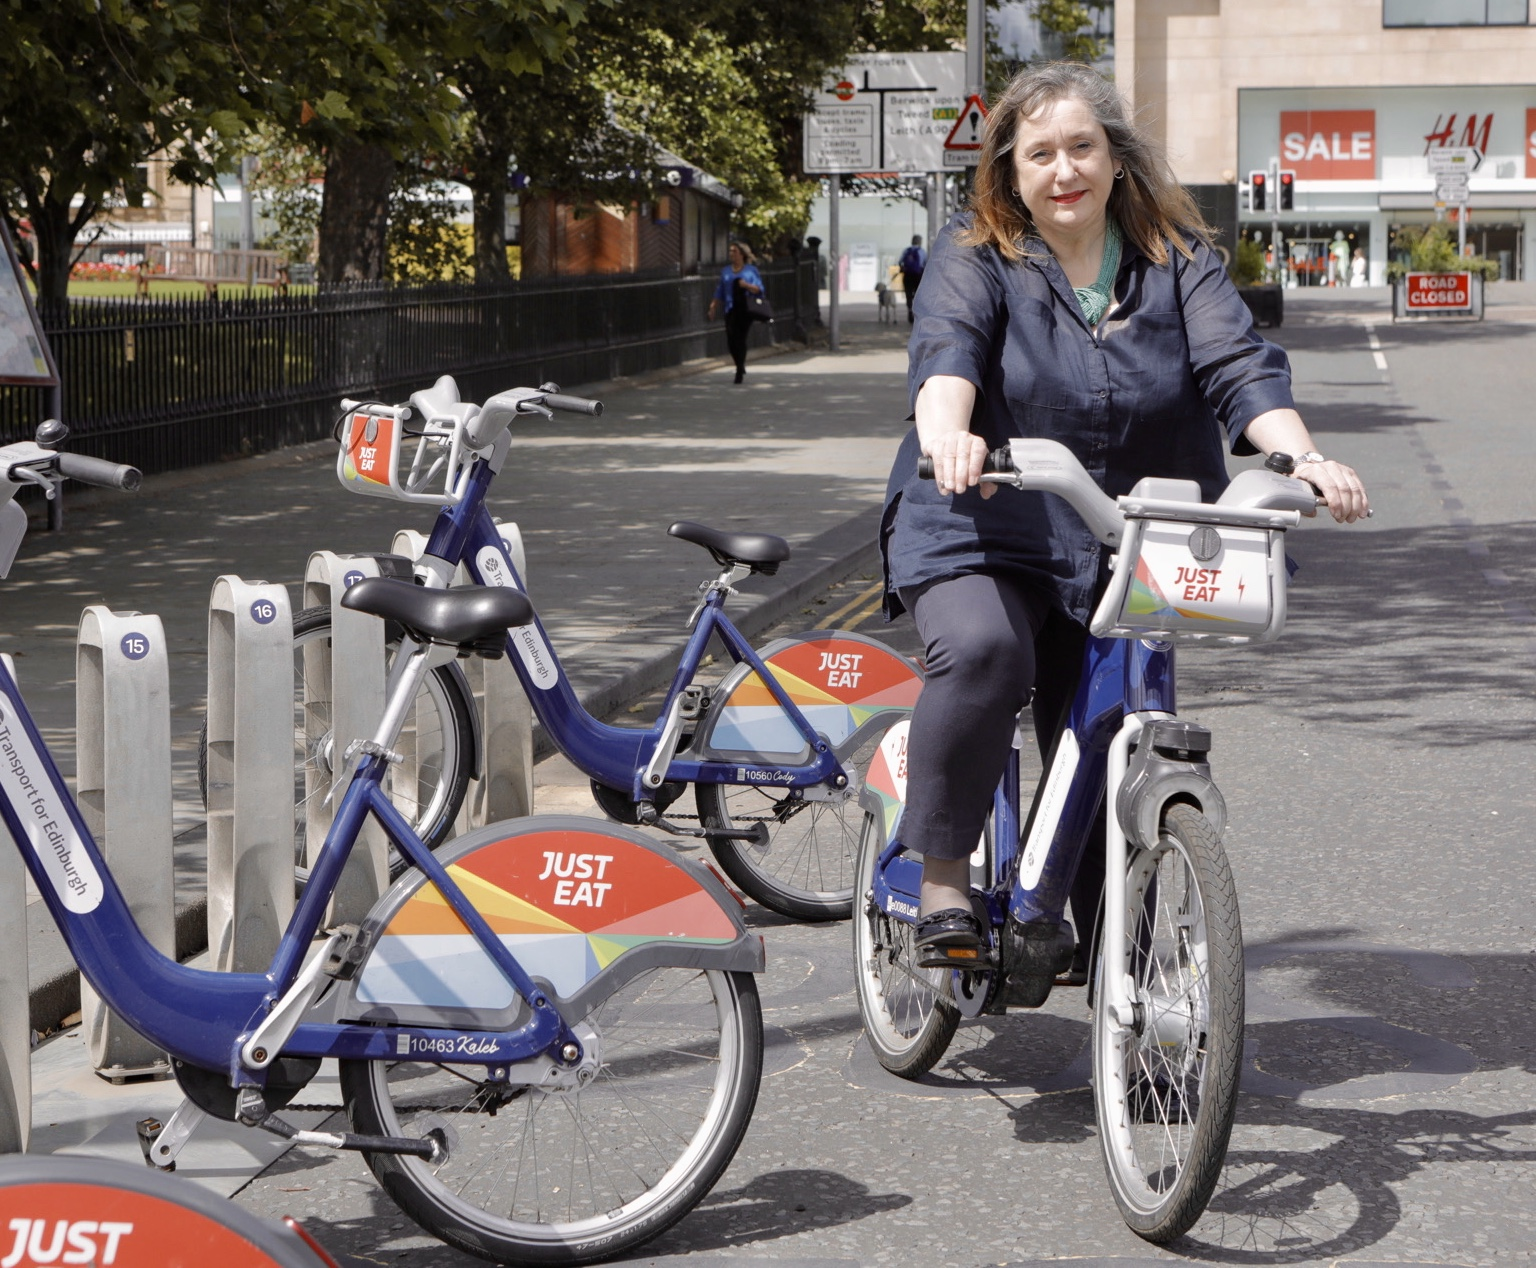 Transport and Environment Convener tries out a hire bike